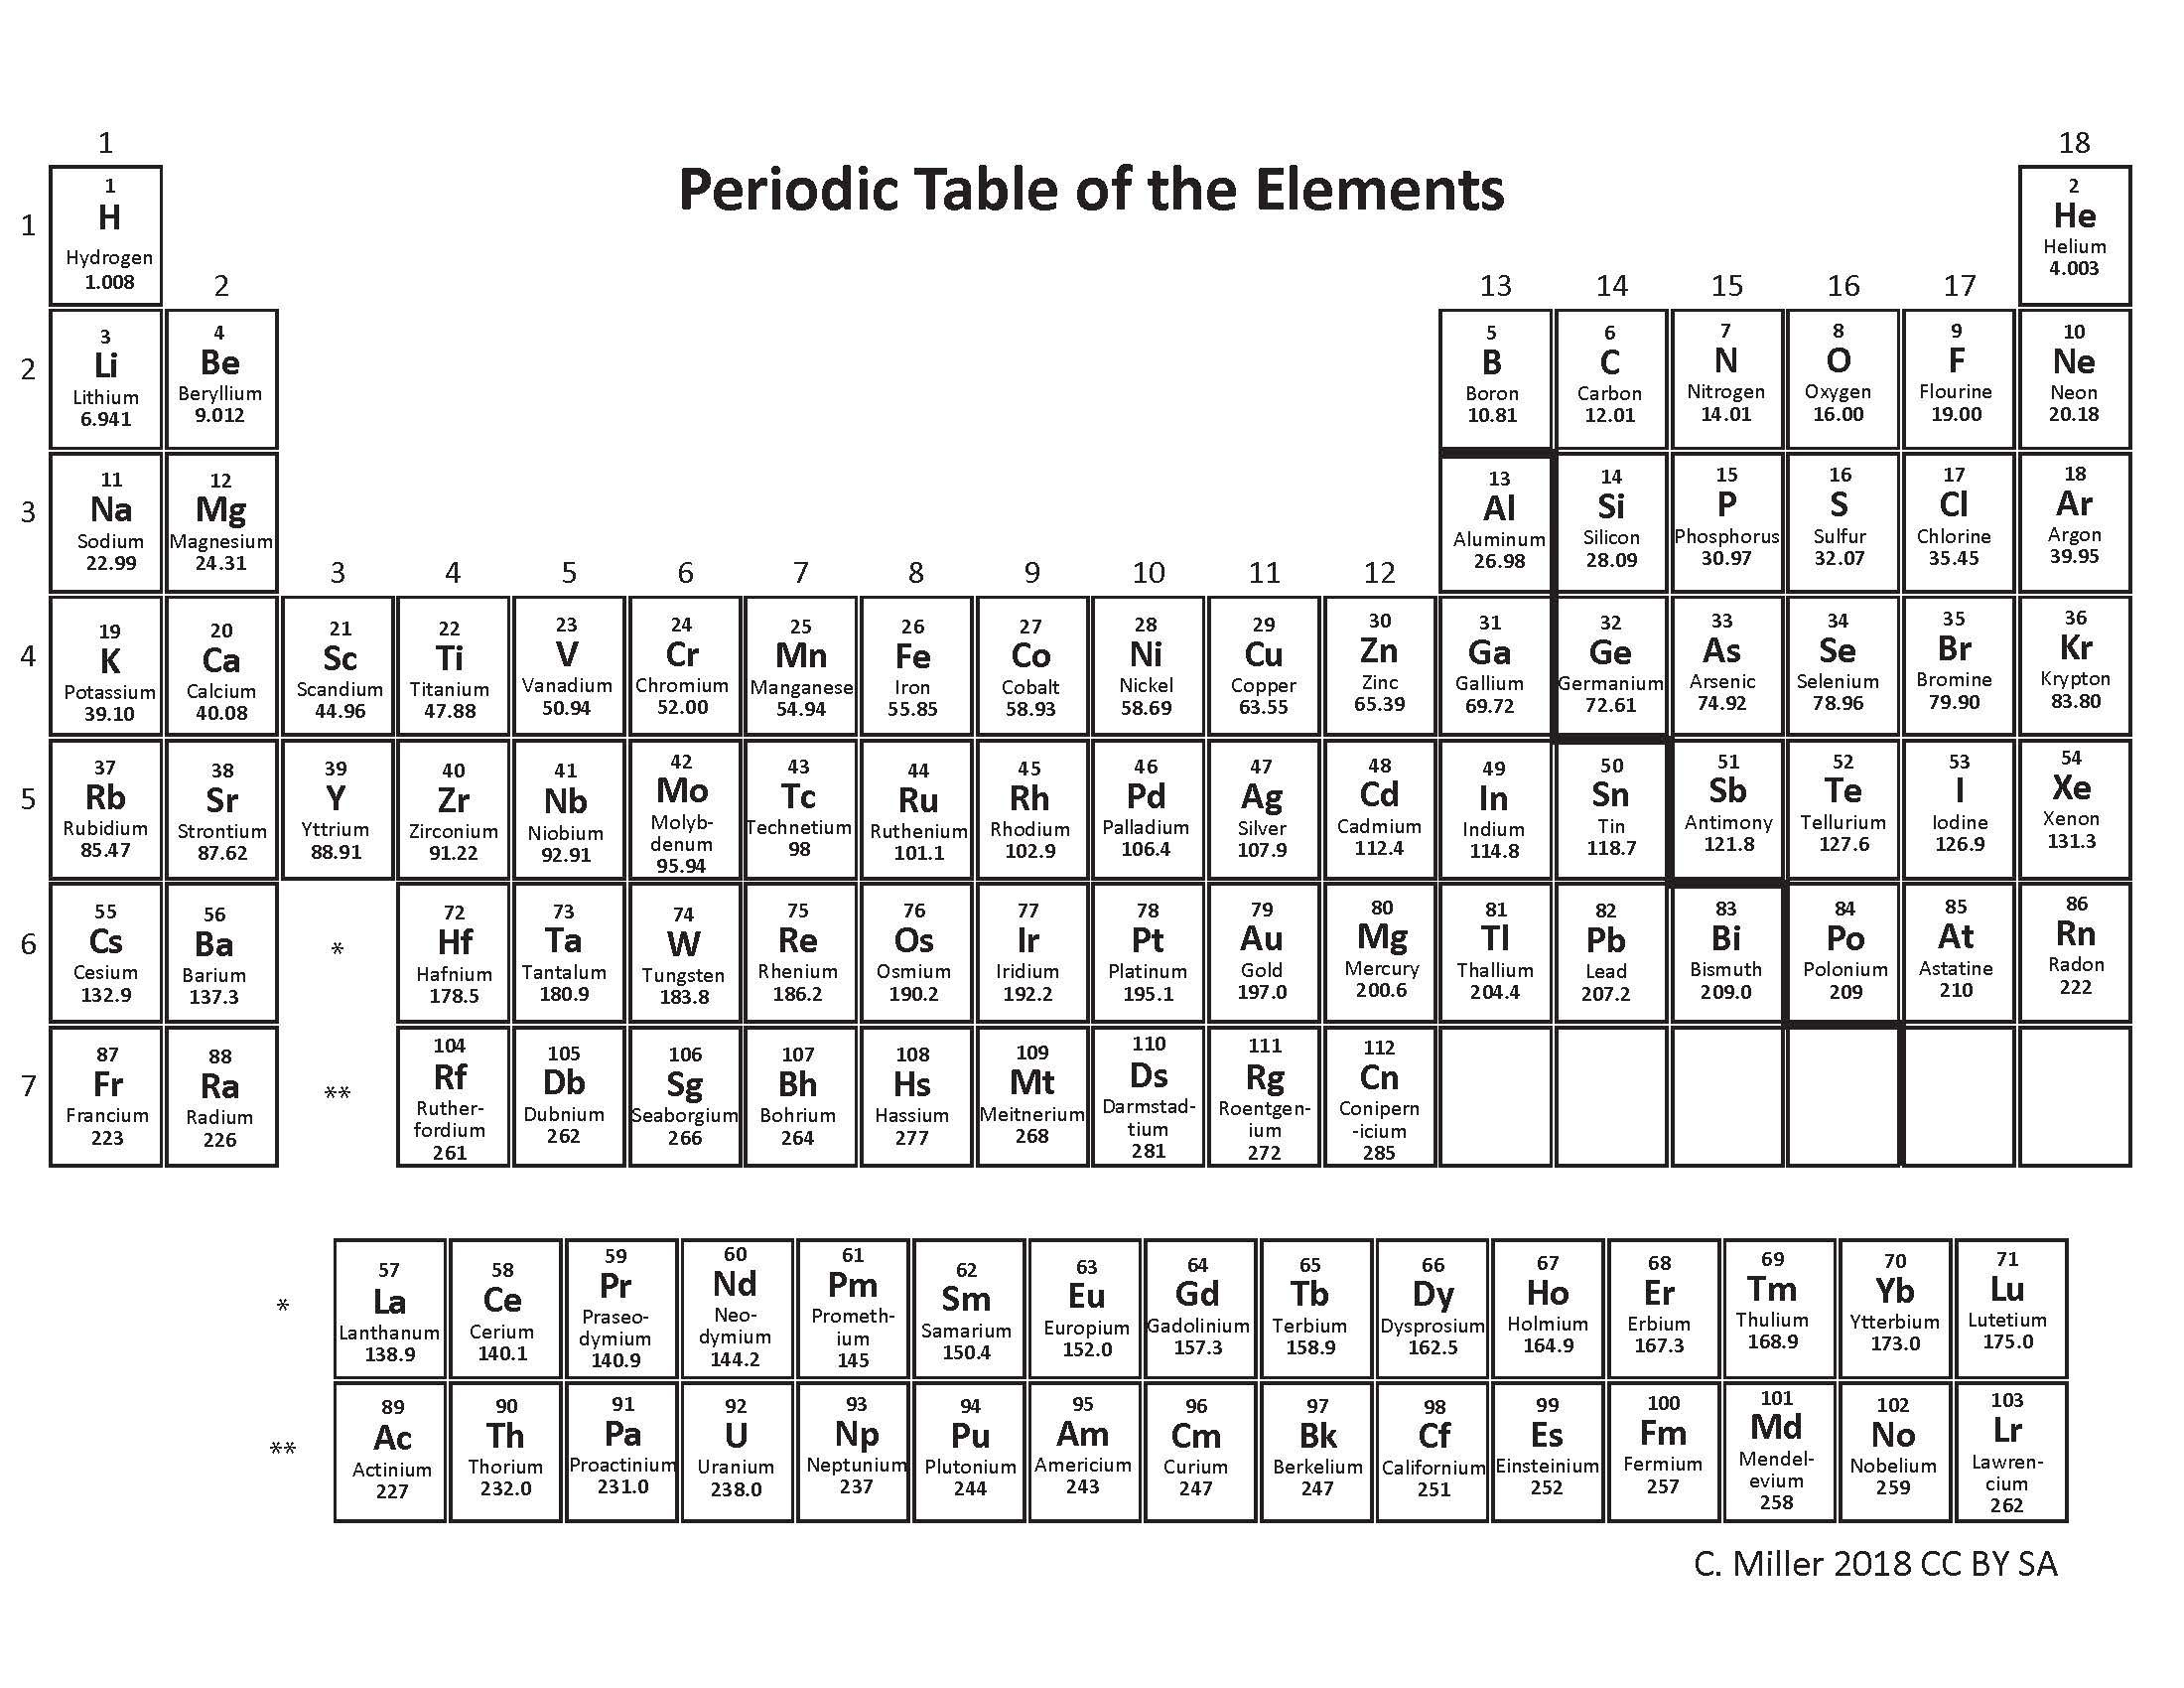 Atomic Number In Periodic Table Periodic Table Atomic Number